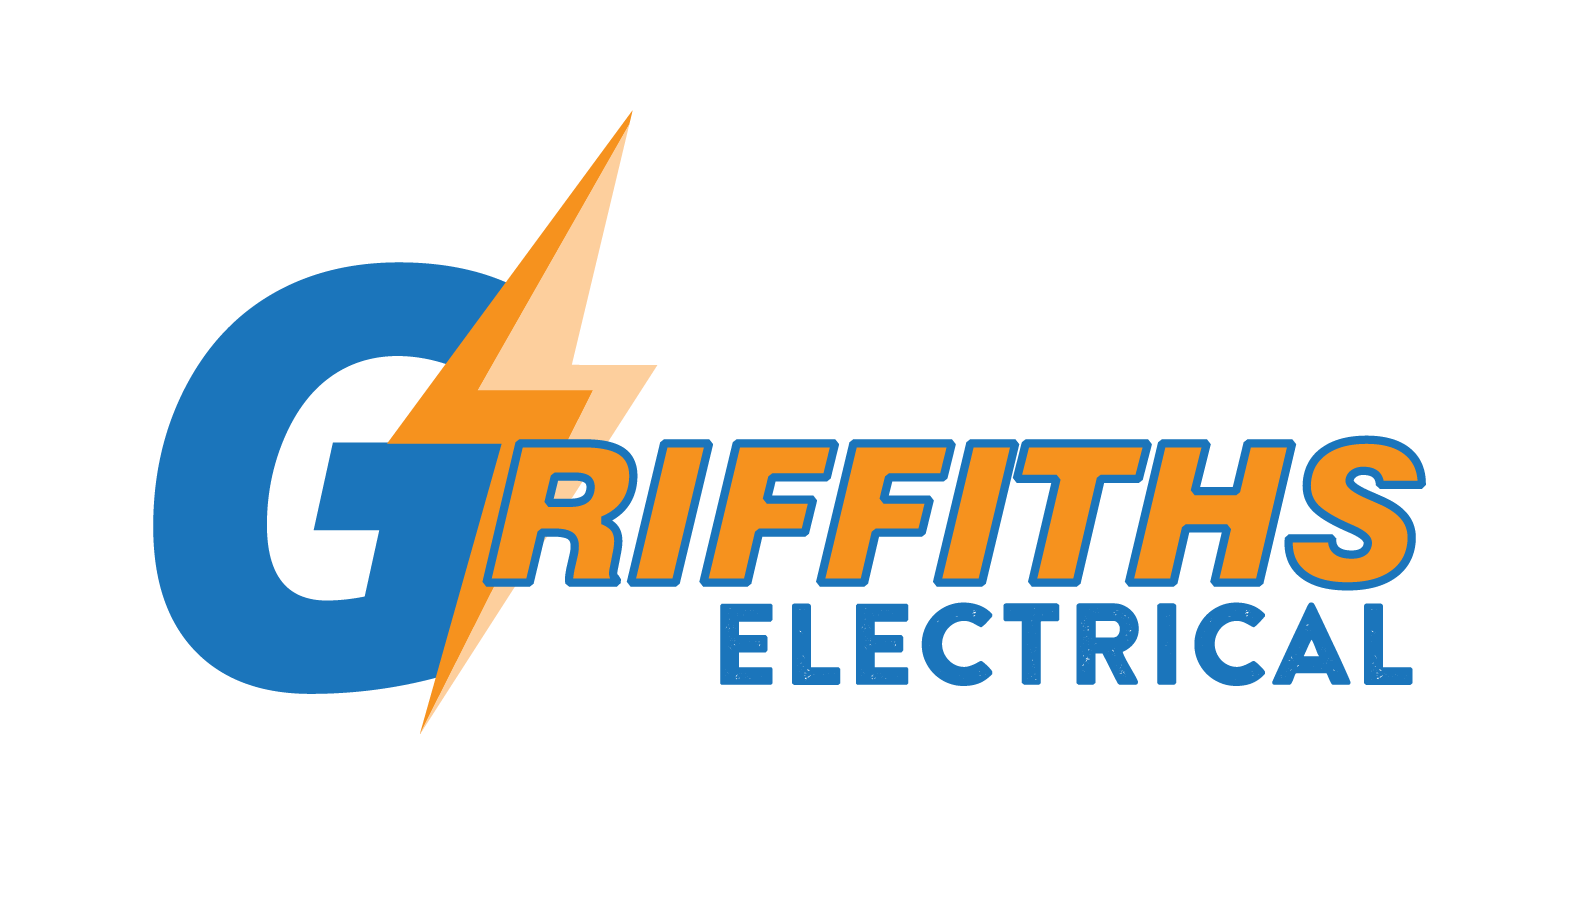 GriffithsElectrical-fullcolour-01.png